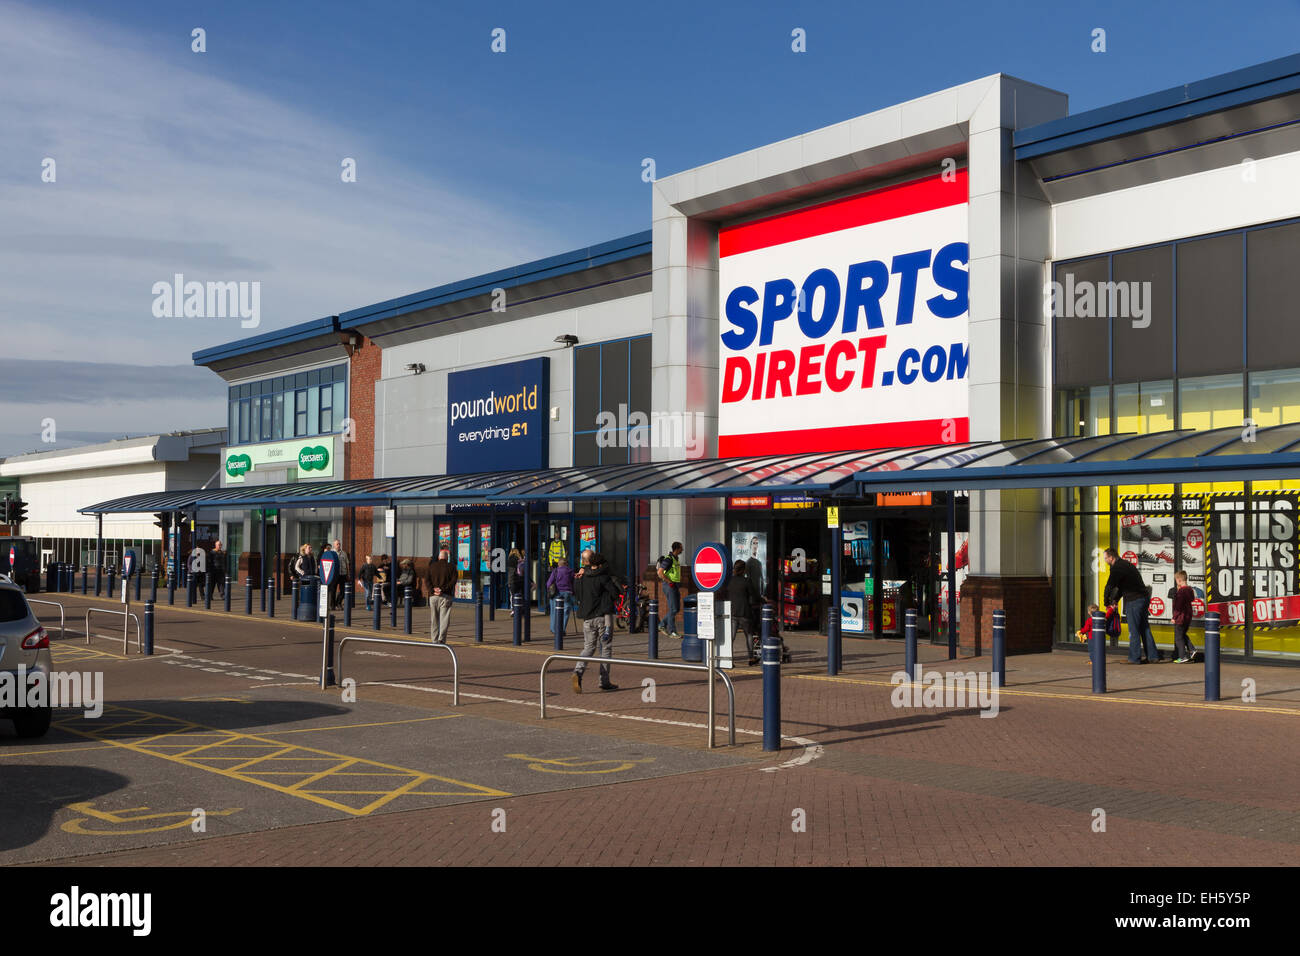 Shop store retail park stock photos shop store retail for Cheap football shirts sports direct